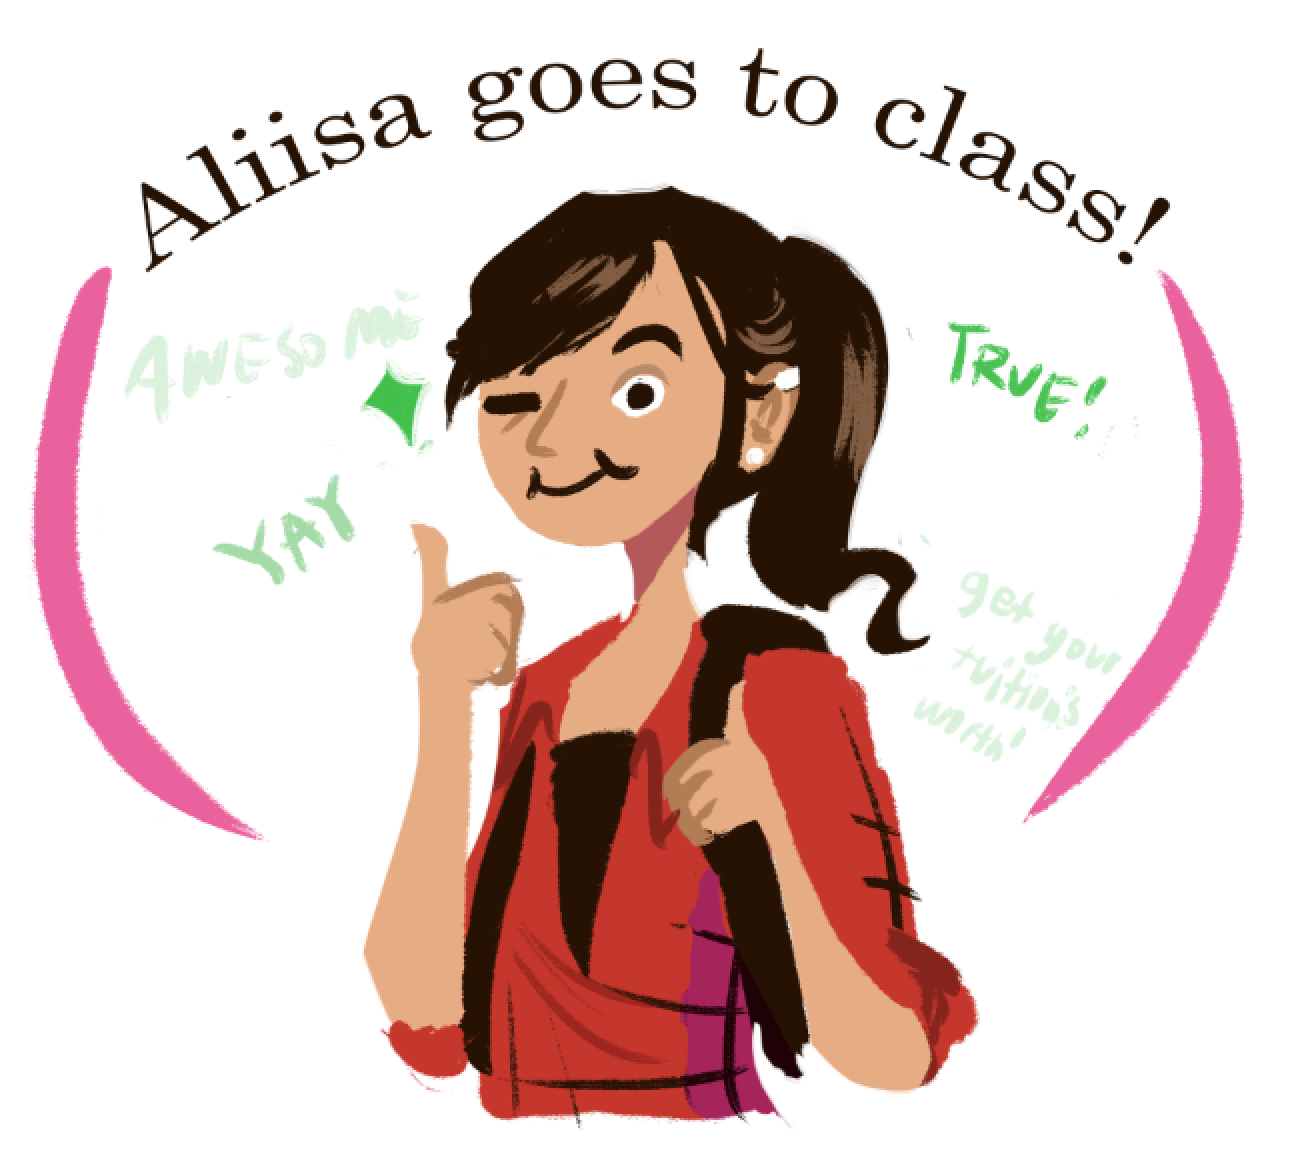 aliisa goes to school